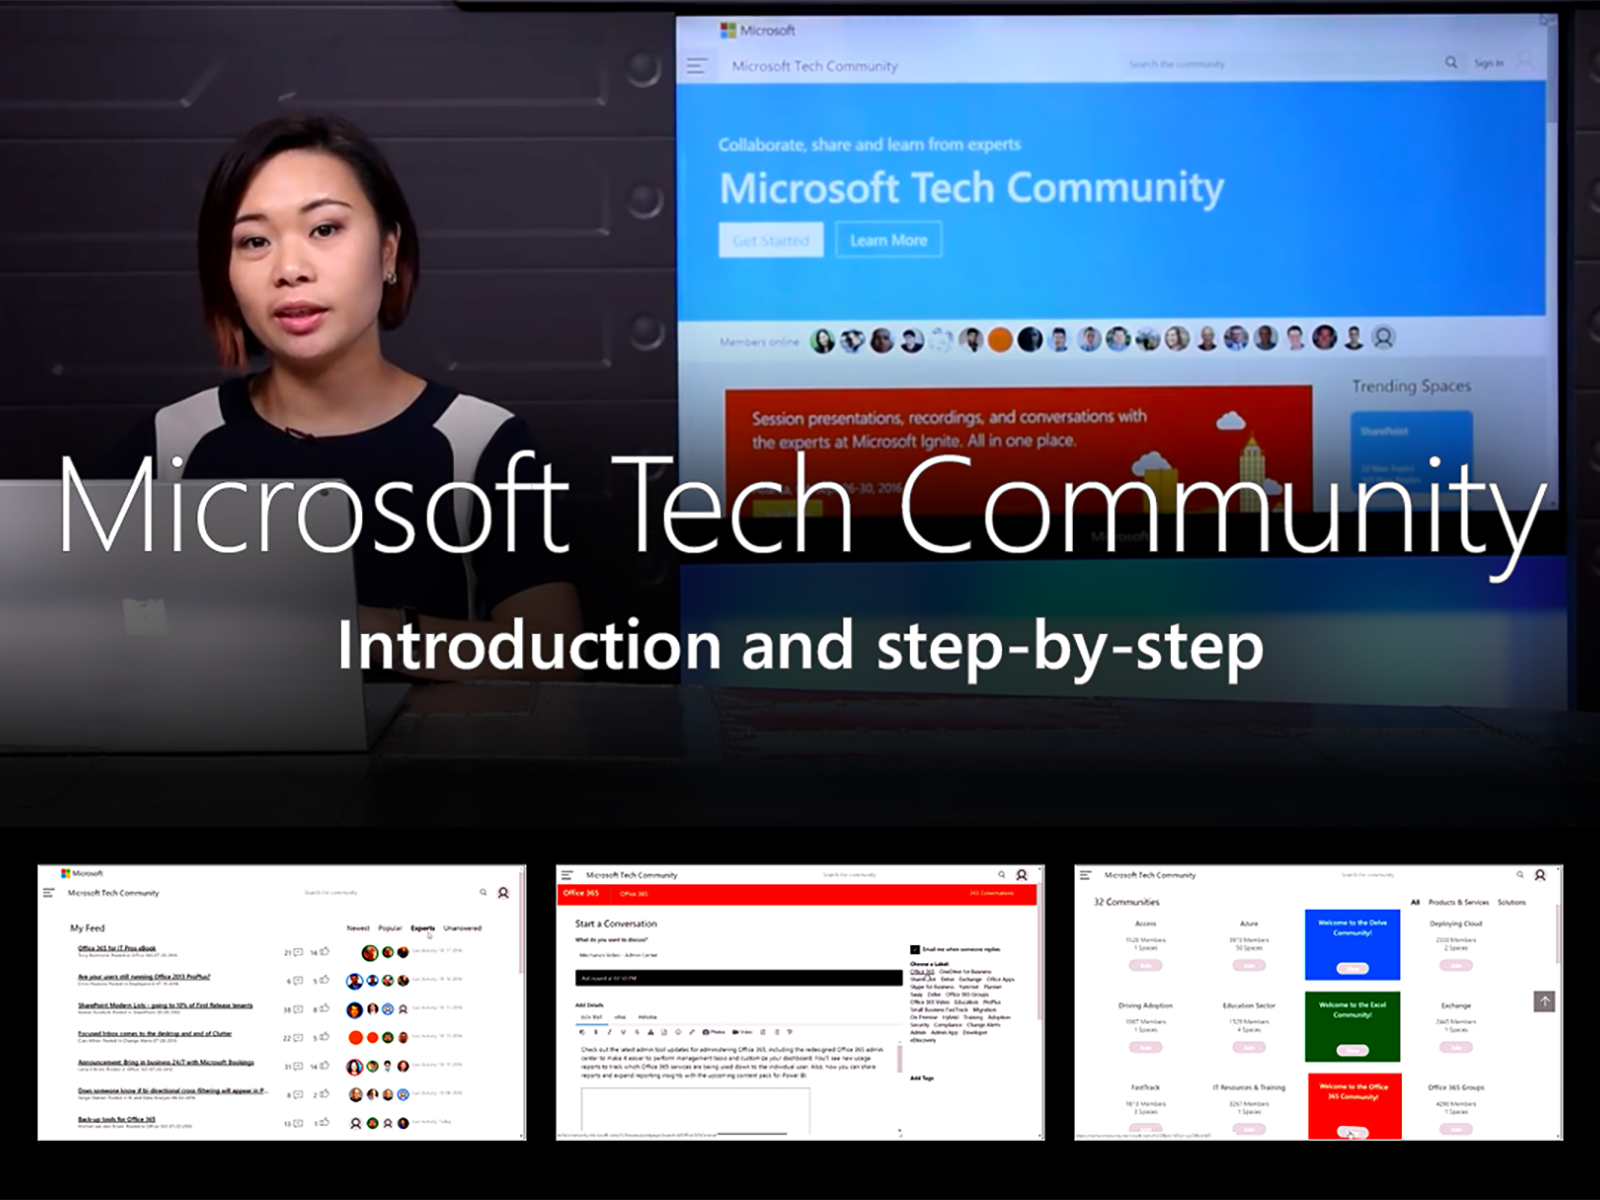 Artwork for Microsoft Tech Community - Step-by-step introduction